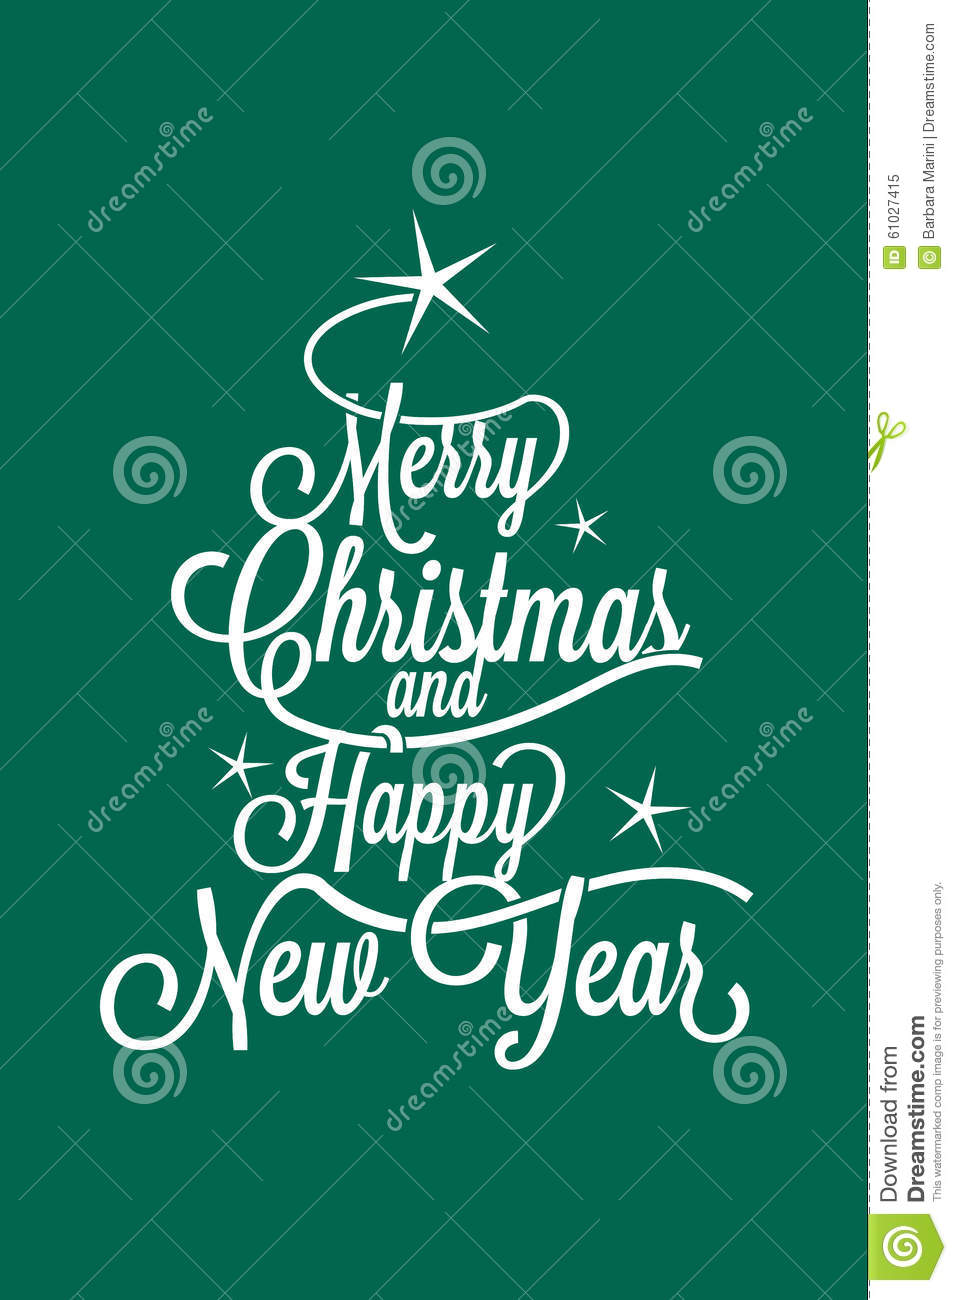 Merry christmas and happy new year greetings postcard stock vector merry christmas and happy new year greetings postcard kristyandbryce Images